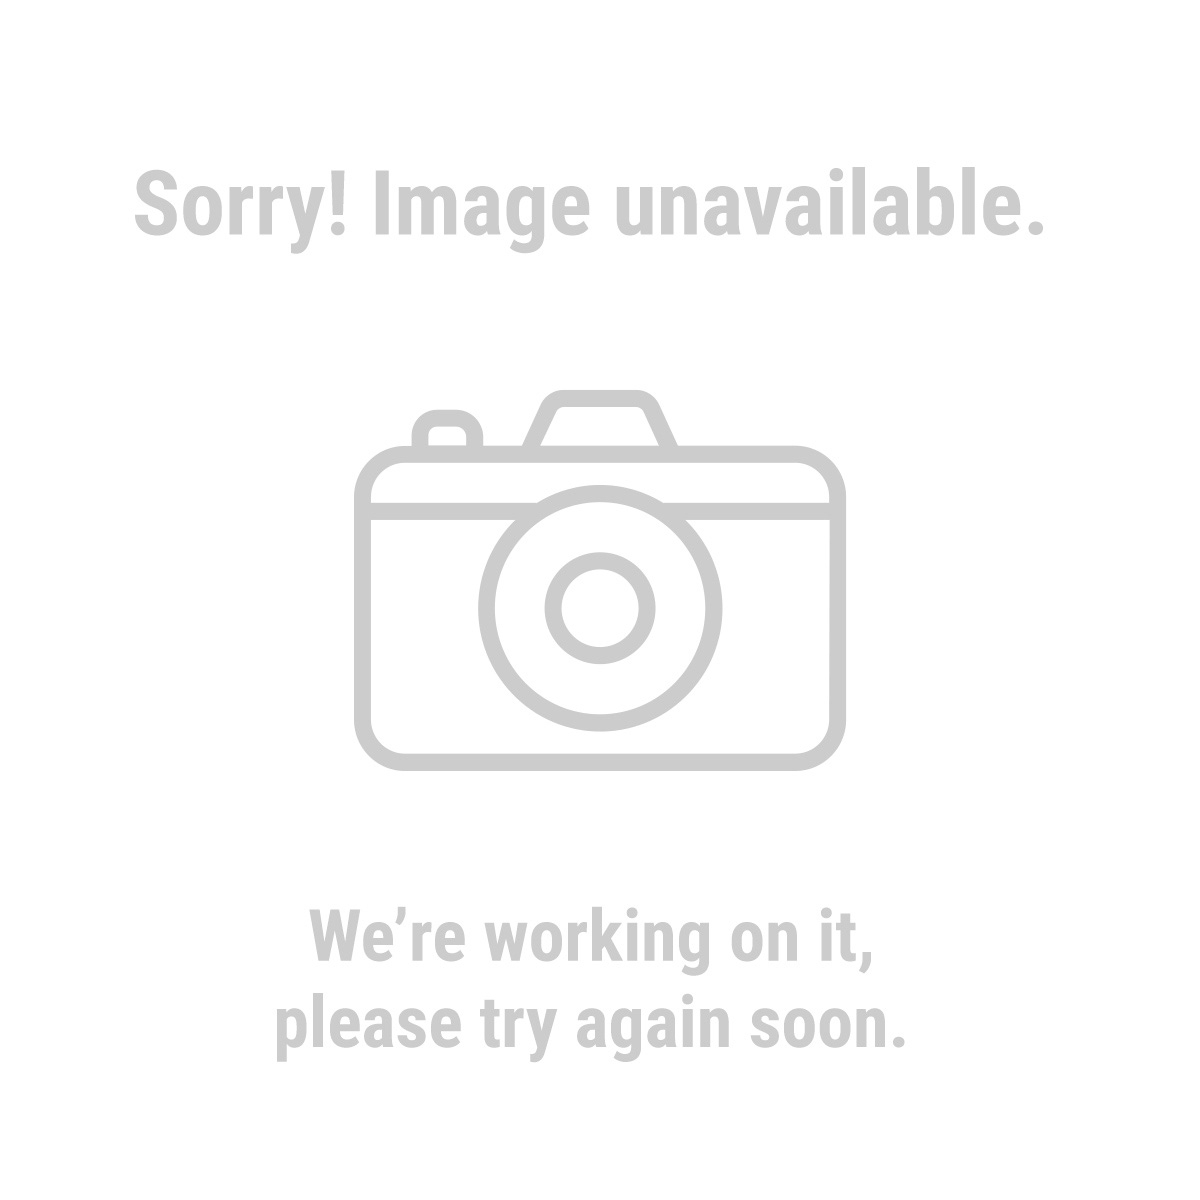 CoverPro 62859 10 ft. x 17 ft. Portable Garage